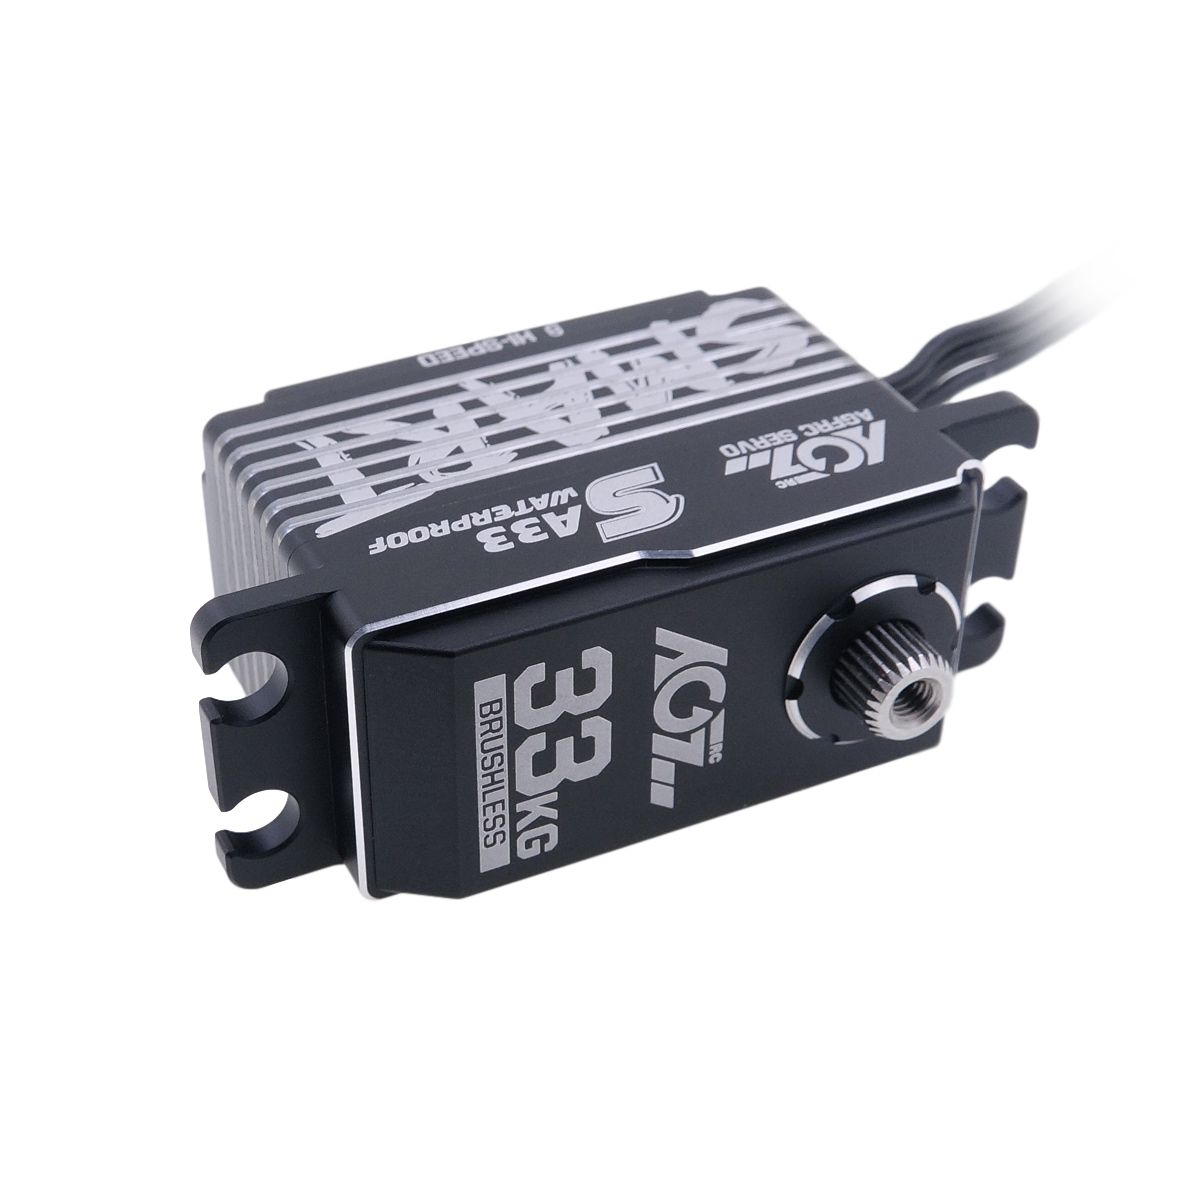 AGF RC SA33 Winch Function Available High Speed Brushless Strong Low Profile Smart Servo for 1/8 Racing Car Boat Aircraft